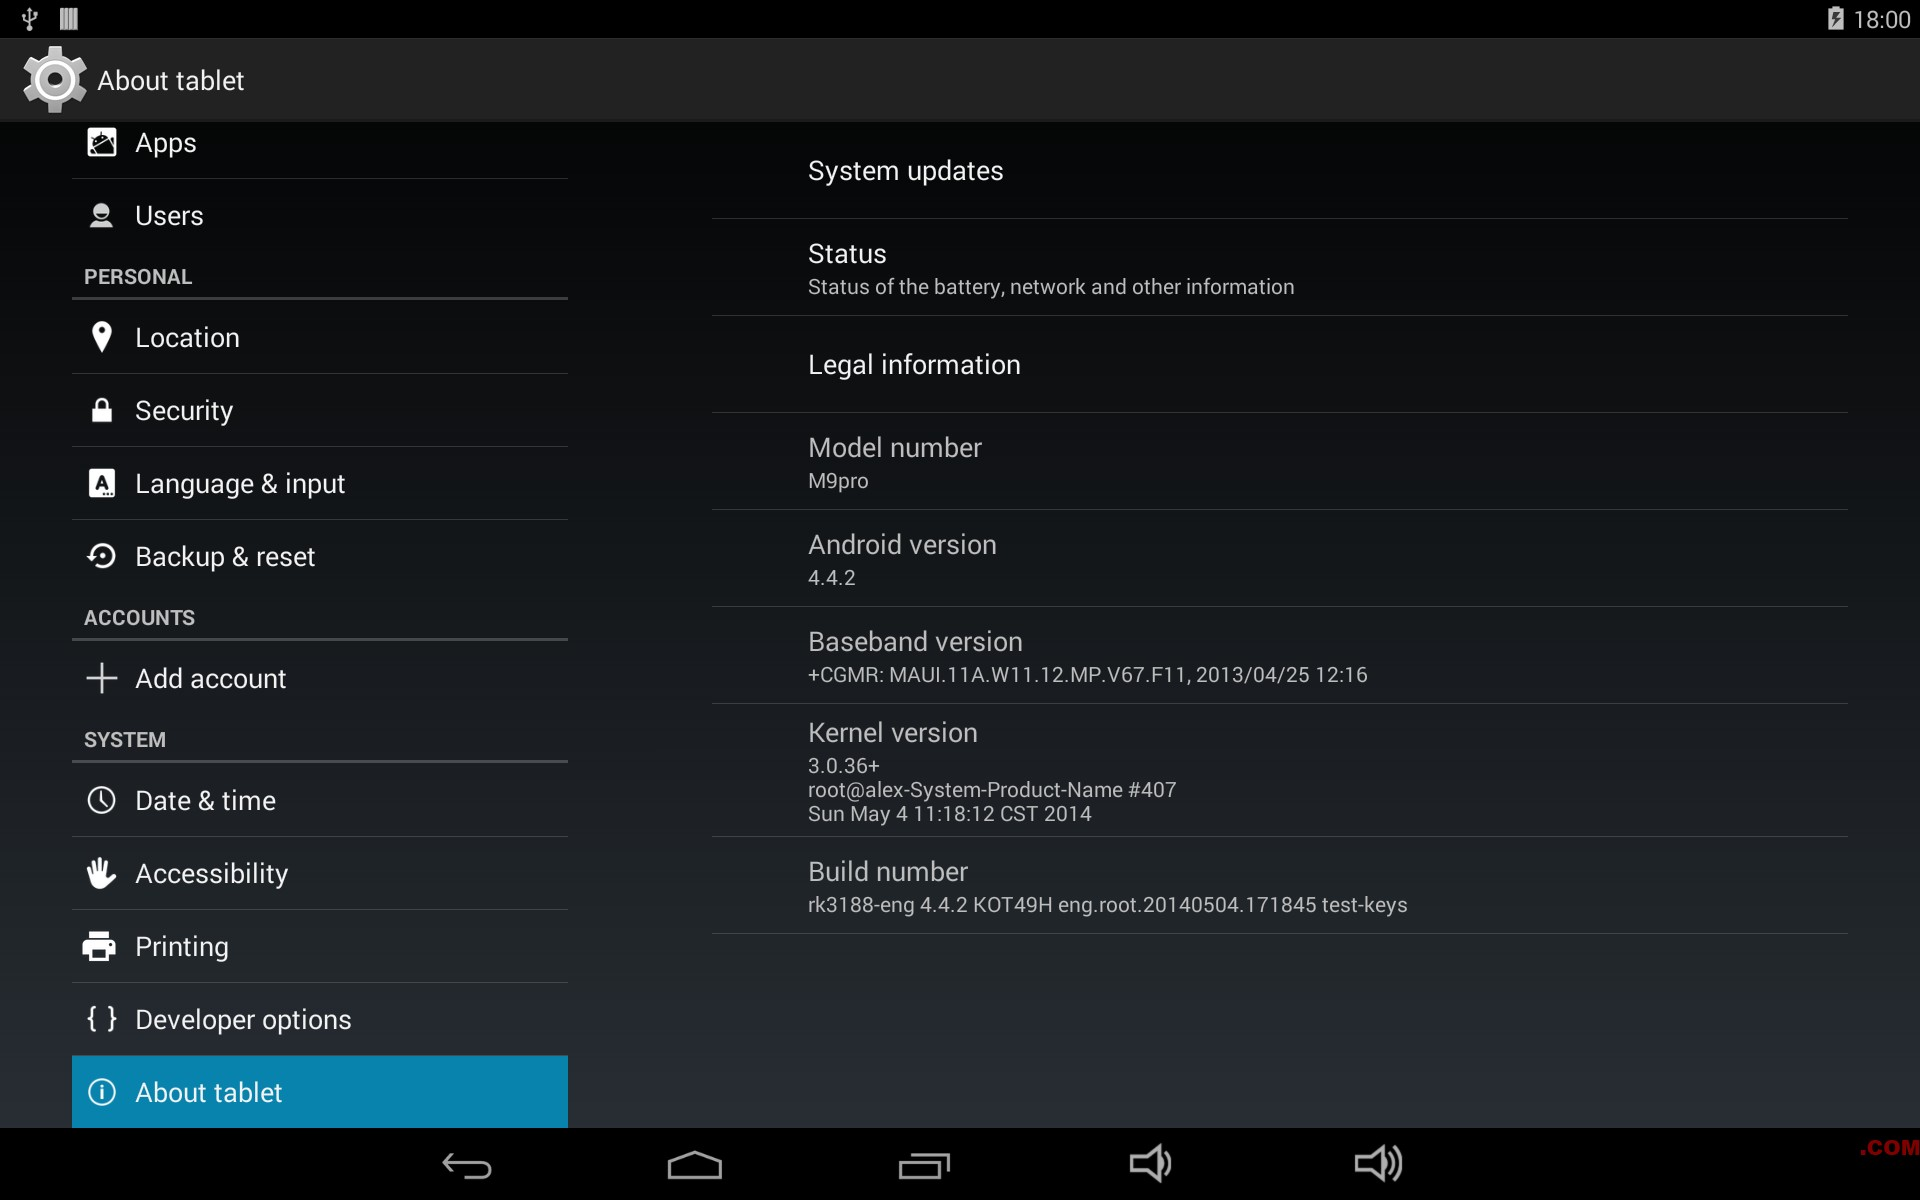 PiPO_M9_Pro_Kitkat_20140504_settings_about.png